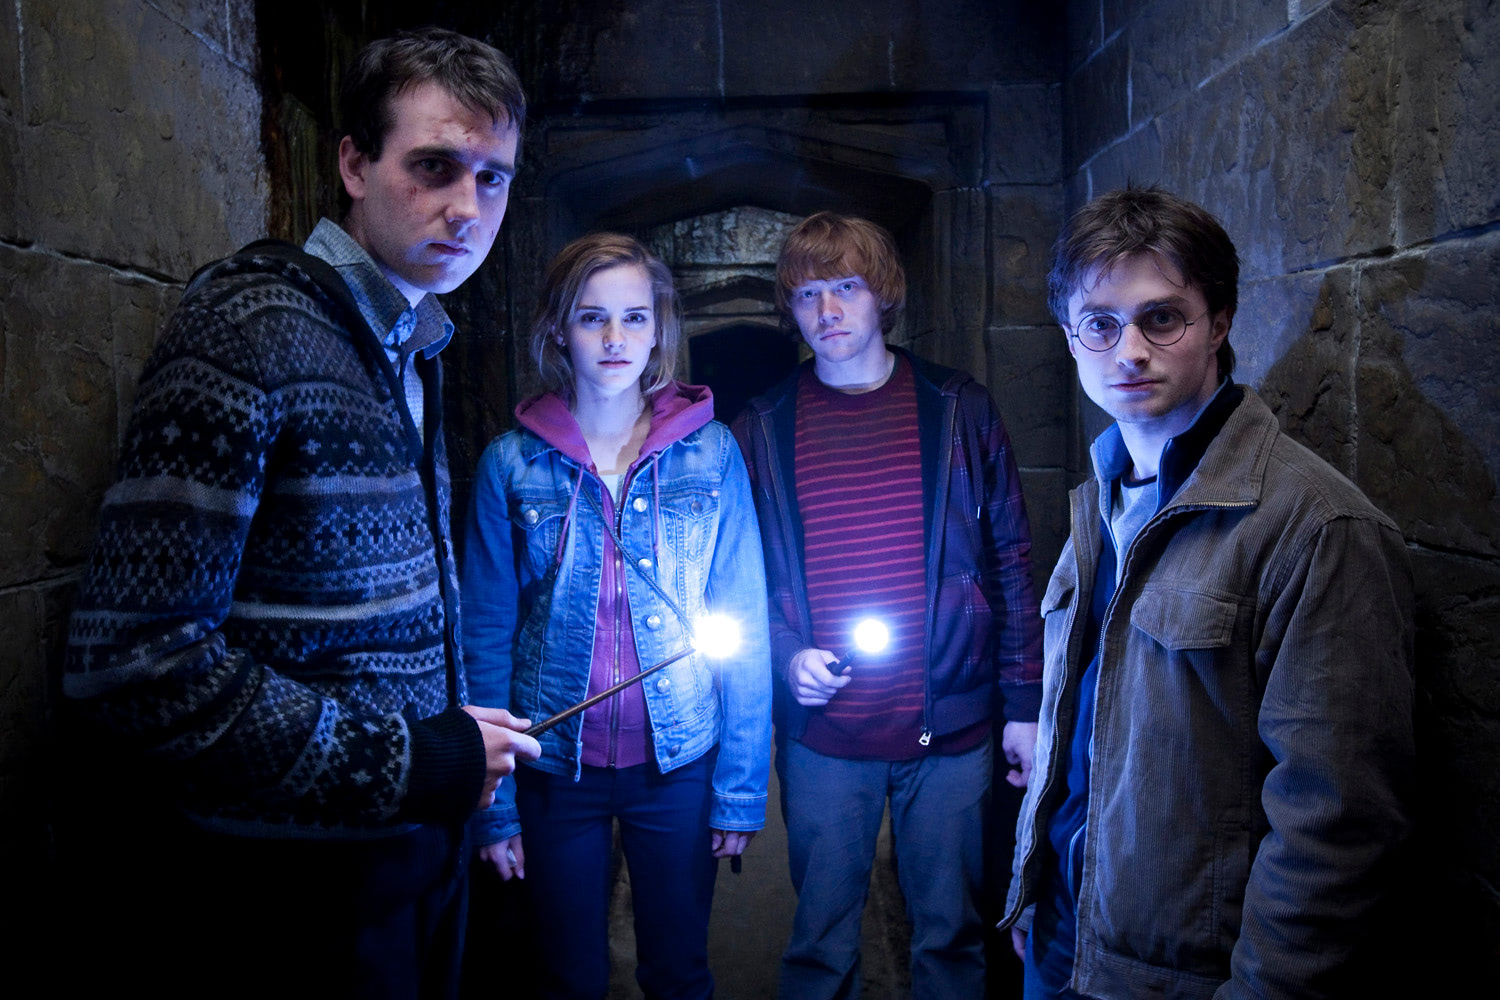 Neville, Hermione, Ron and Harry with wands alight